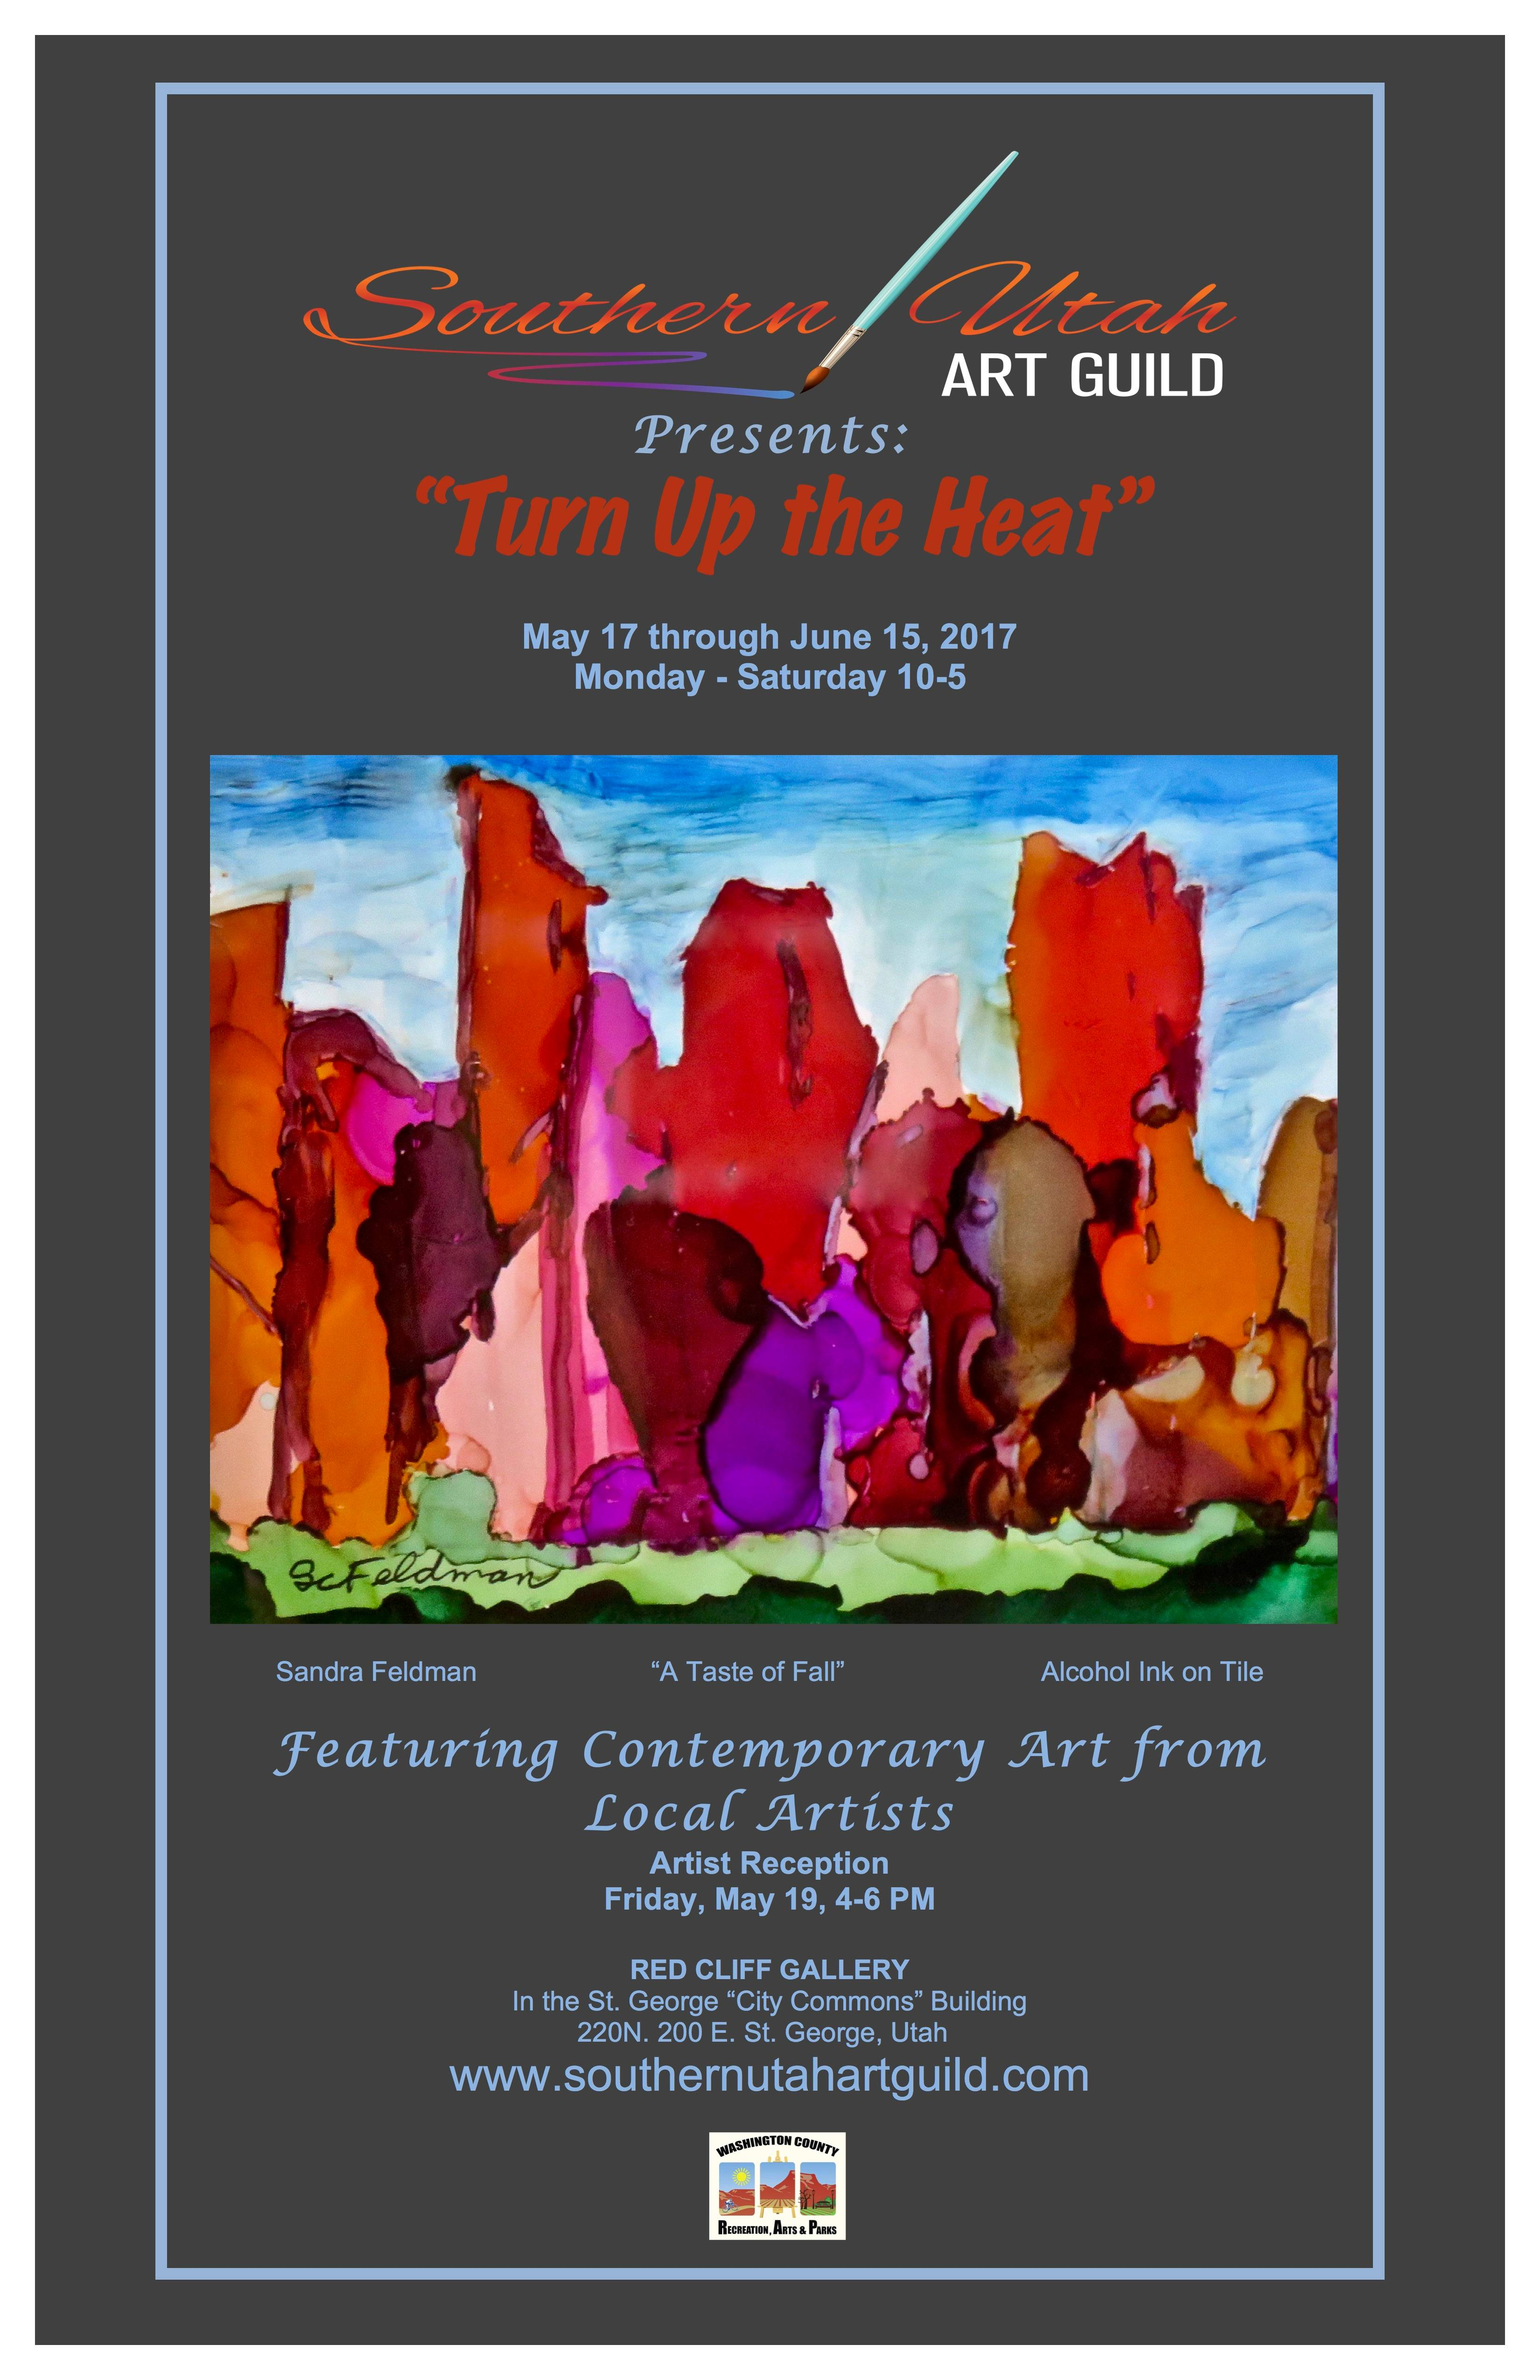 Turn Up the Heat Poster